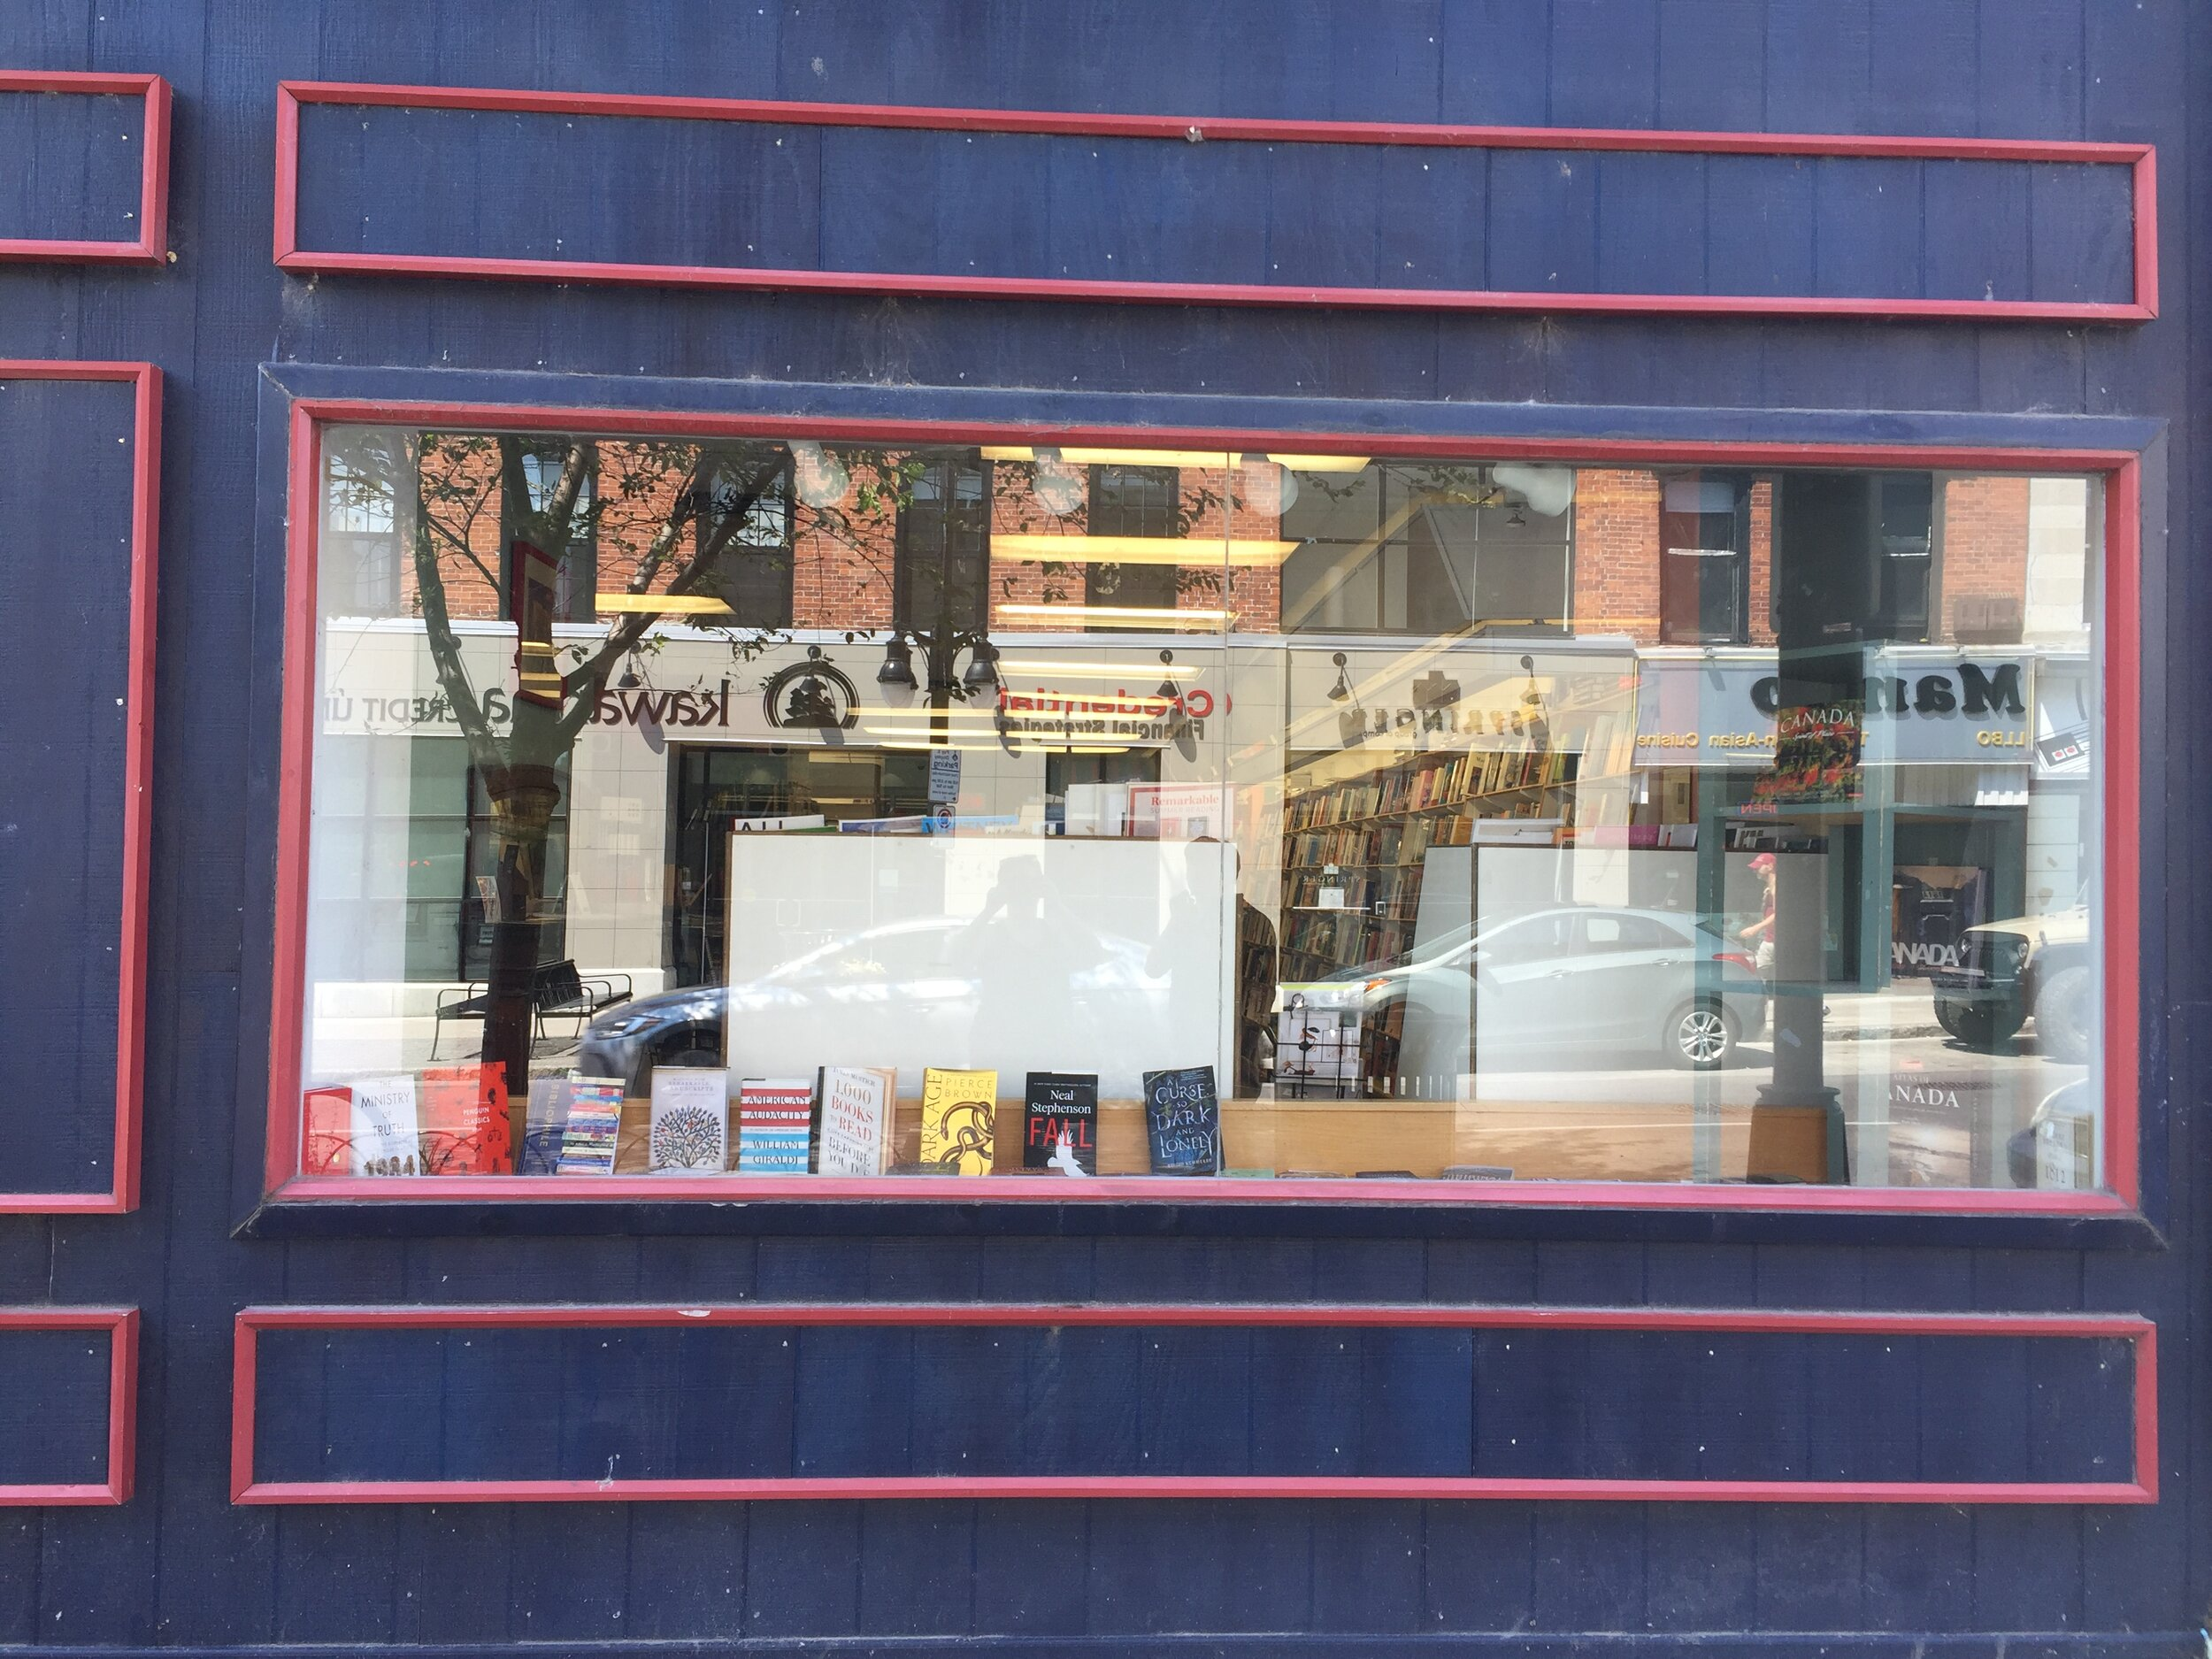 [image description: The display window at Novel Idea bookstore. There are just a couple of books sitting on the window sill; no decorative display.]